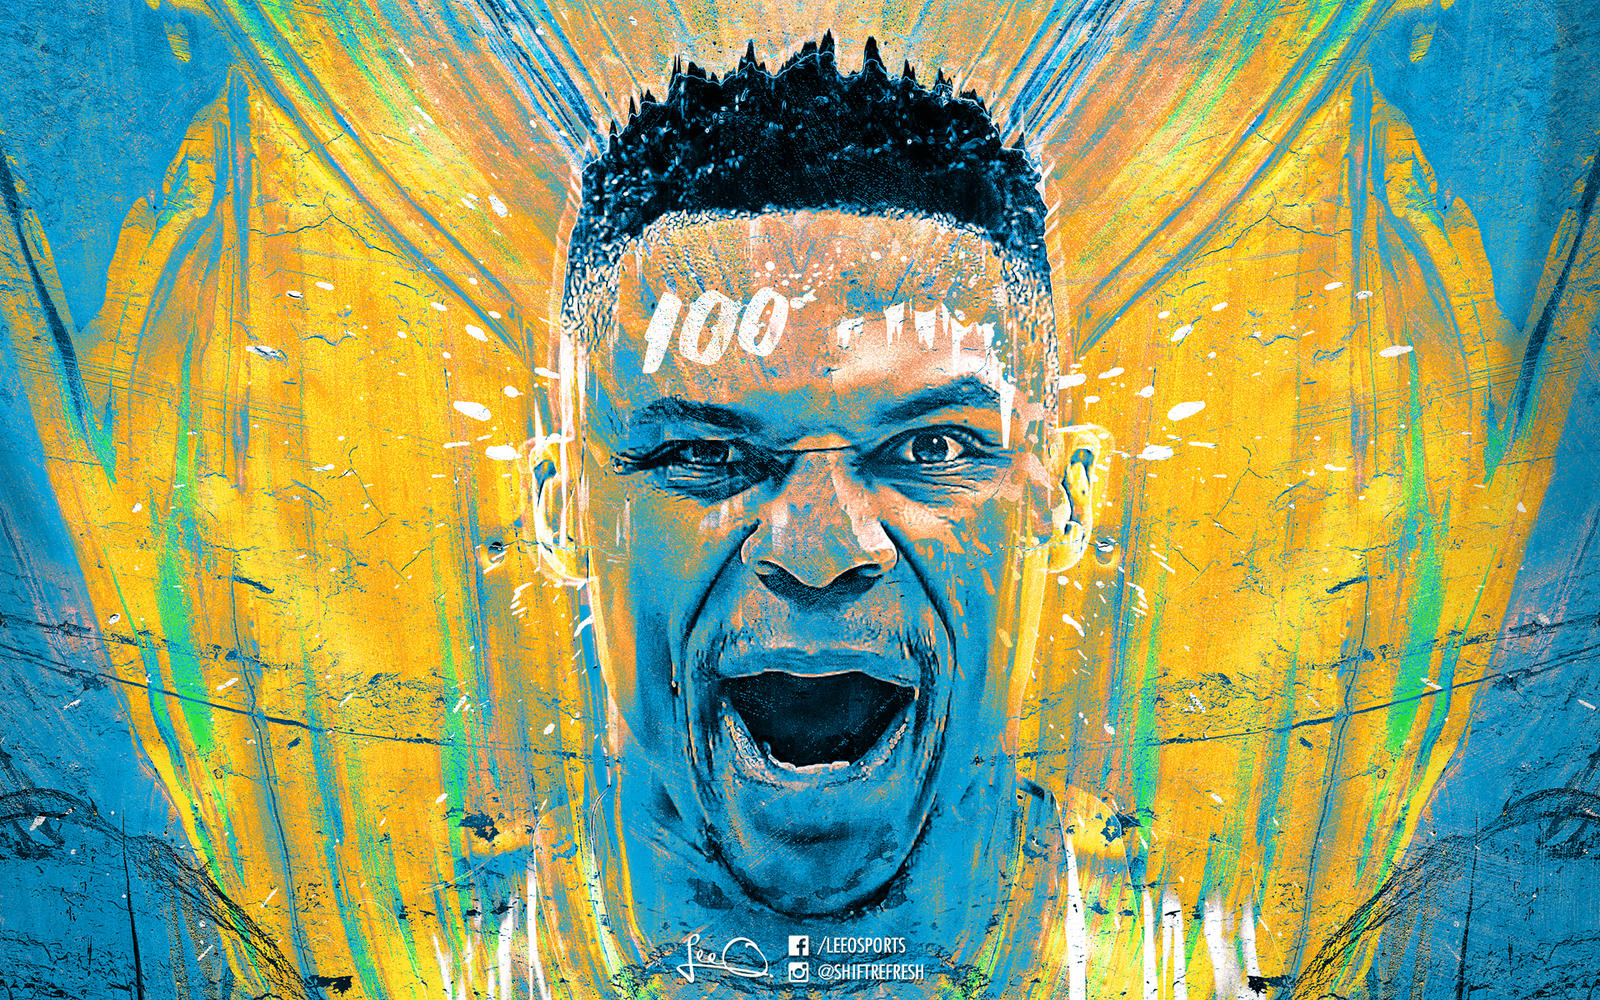 Russell Westbrook Keep It 100 Wallpaper 611708377 on okc thunder cartoon